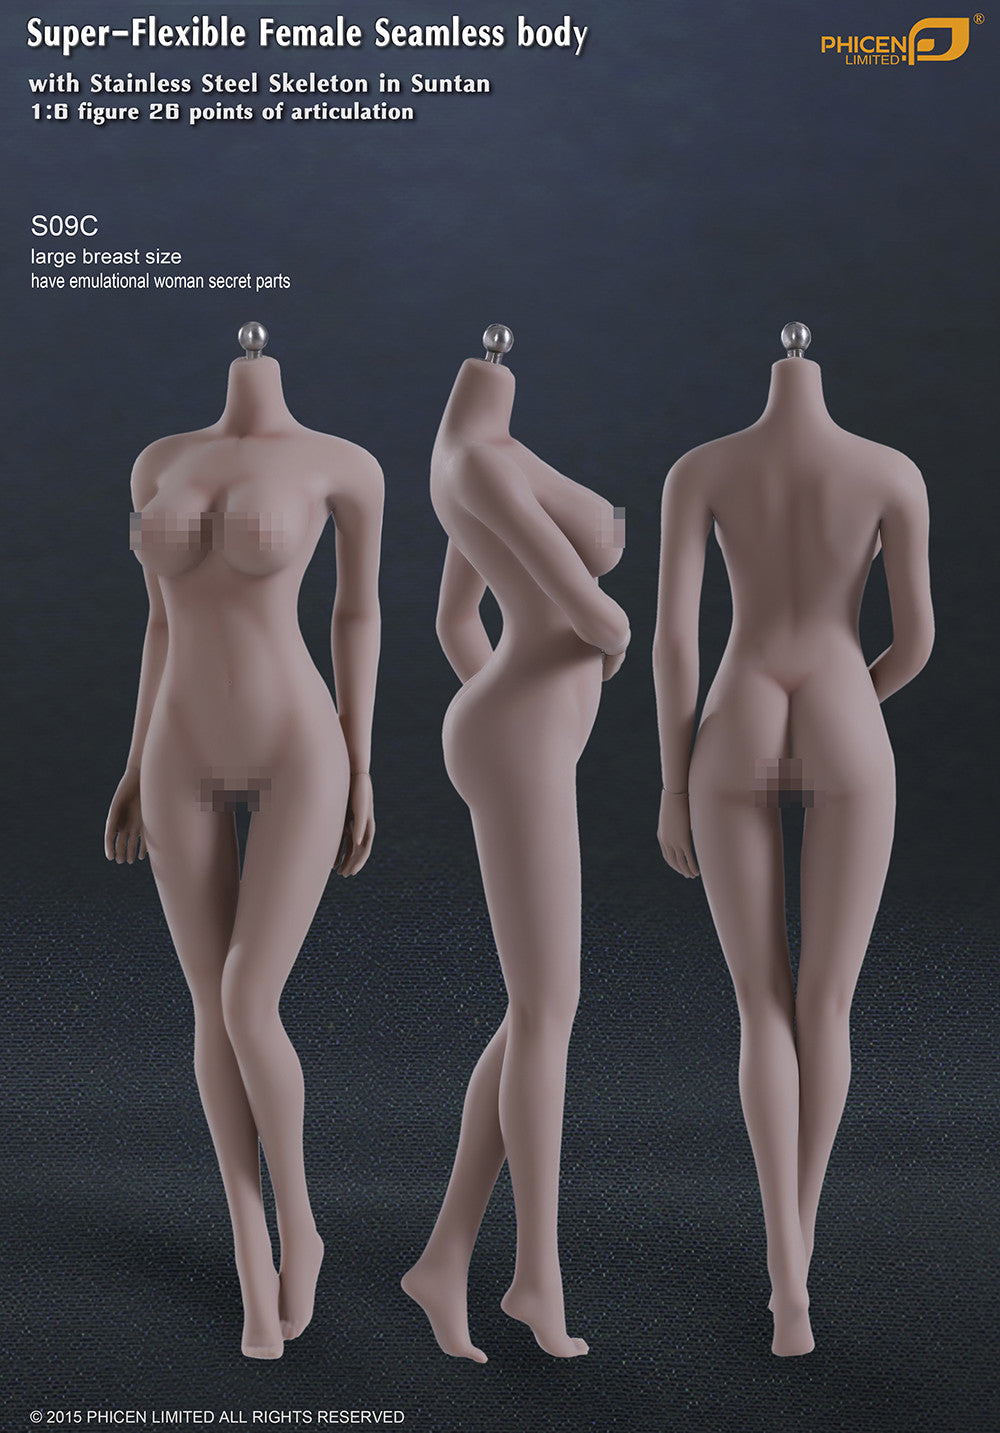 Phicen S09C Suntan, Large Breast Size Female With Genitalia Seamless 1/6 Body Action Figure - Movie Figures